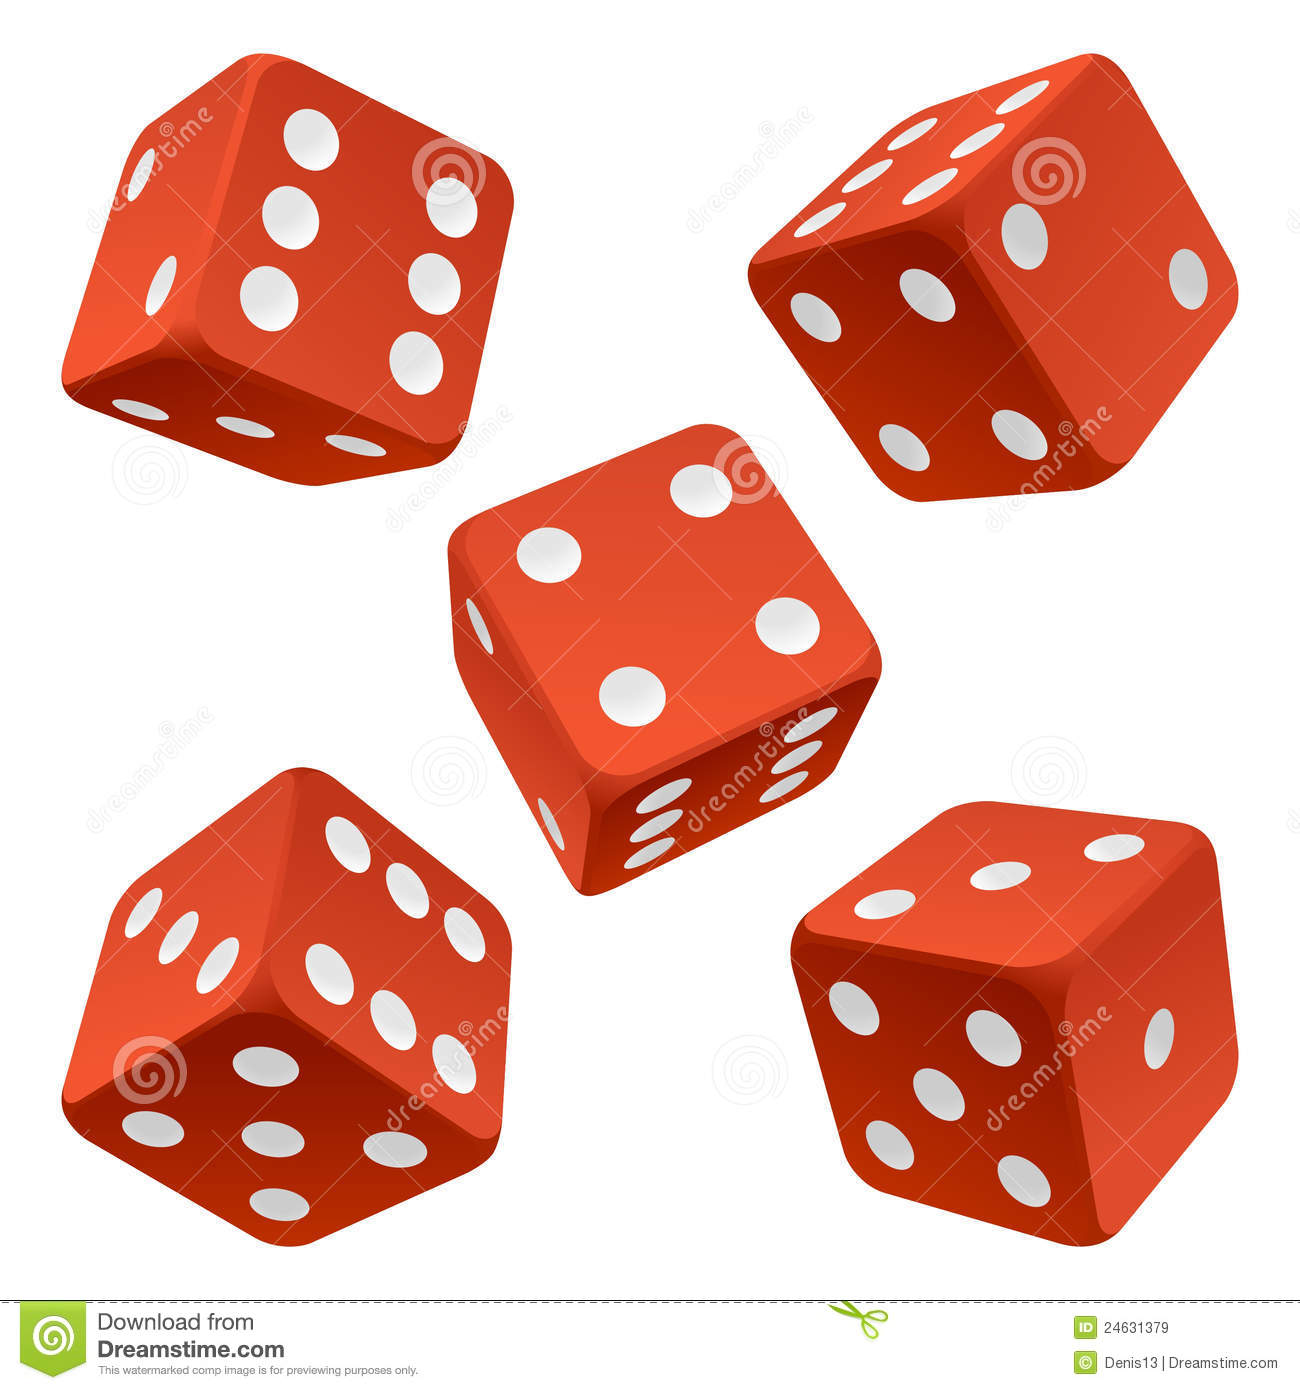 casino free online dice roll online